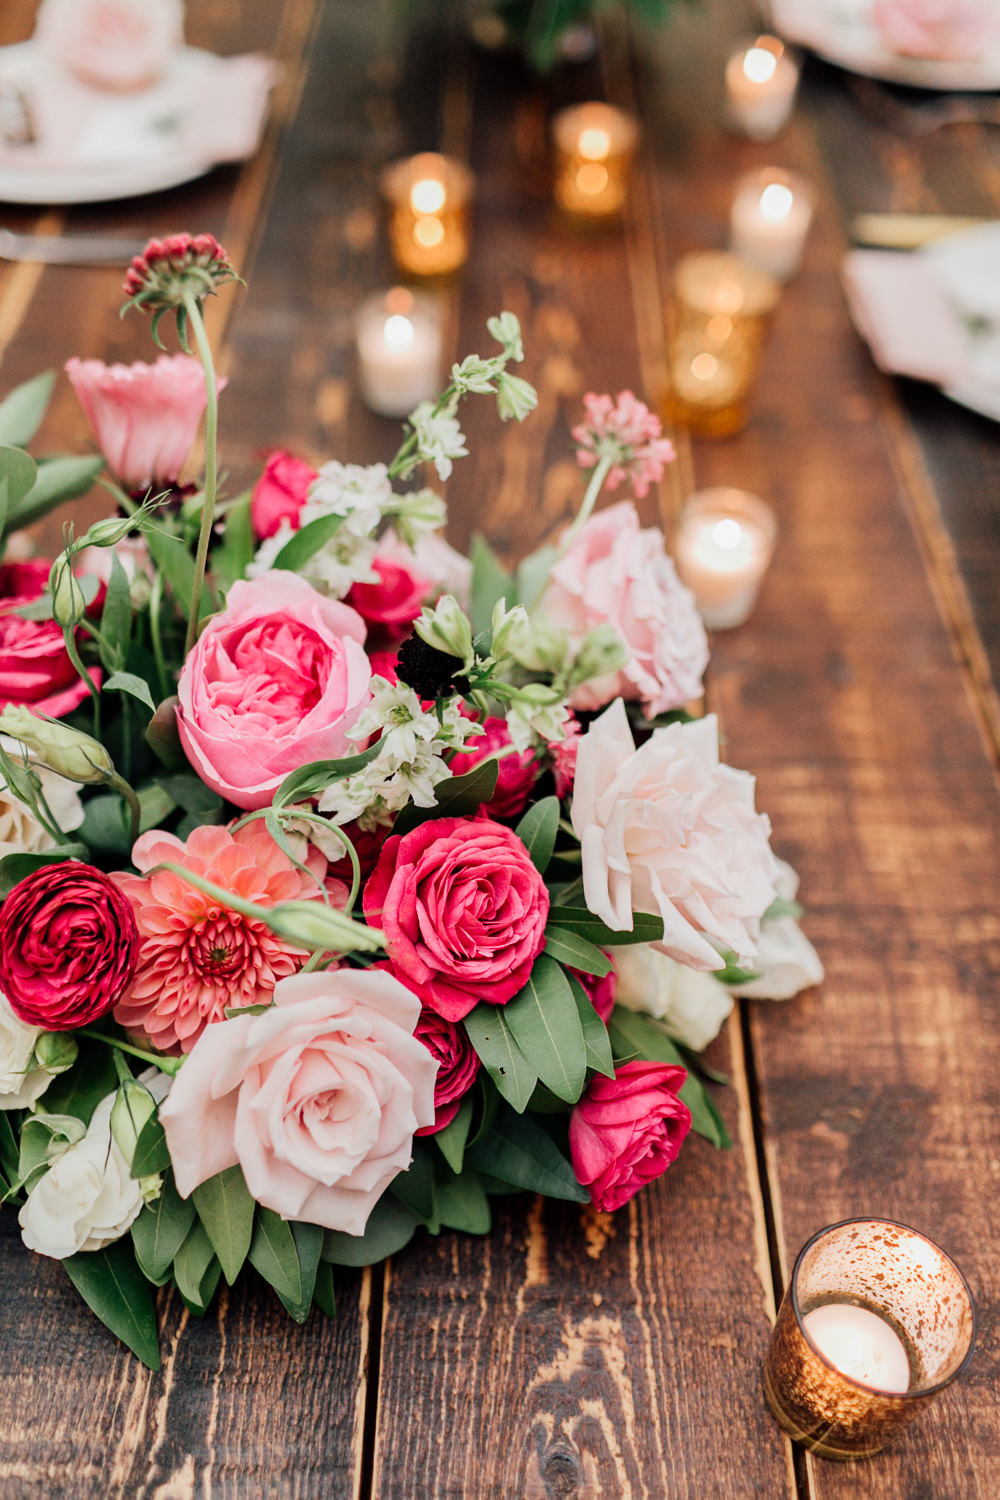 Table Tablescape Decor Flowers Swag Runner Garland Red Pink Rose Dahlia Centrepiece Romantic Soft Elopement Wedding Las Vegas Kristen Joy Photography